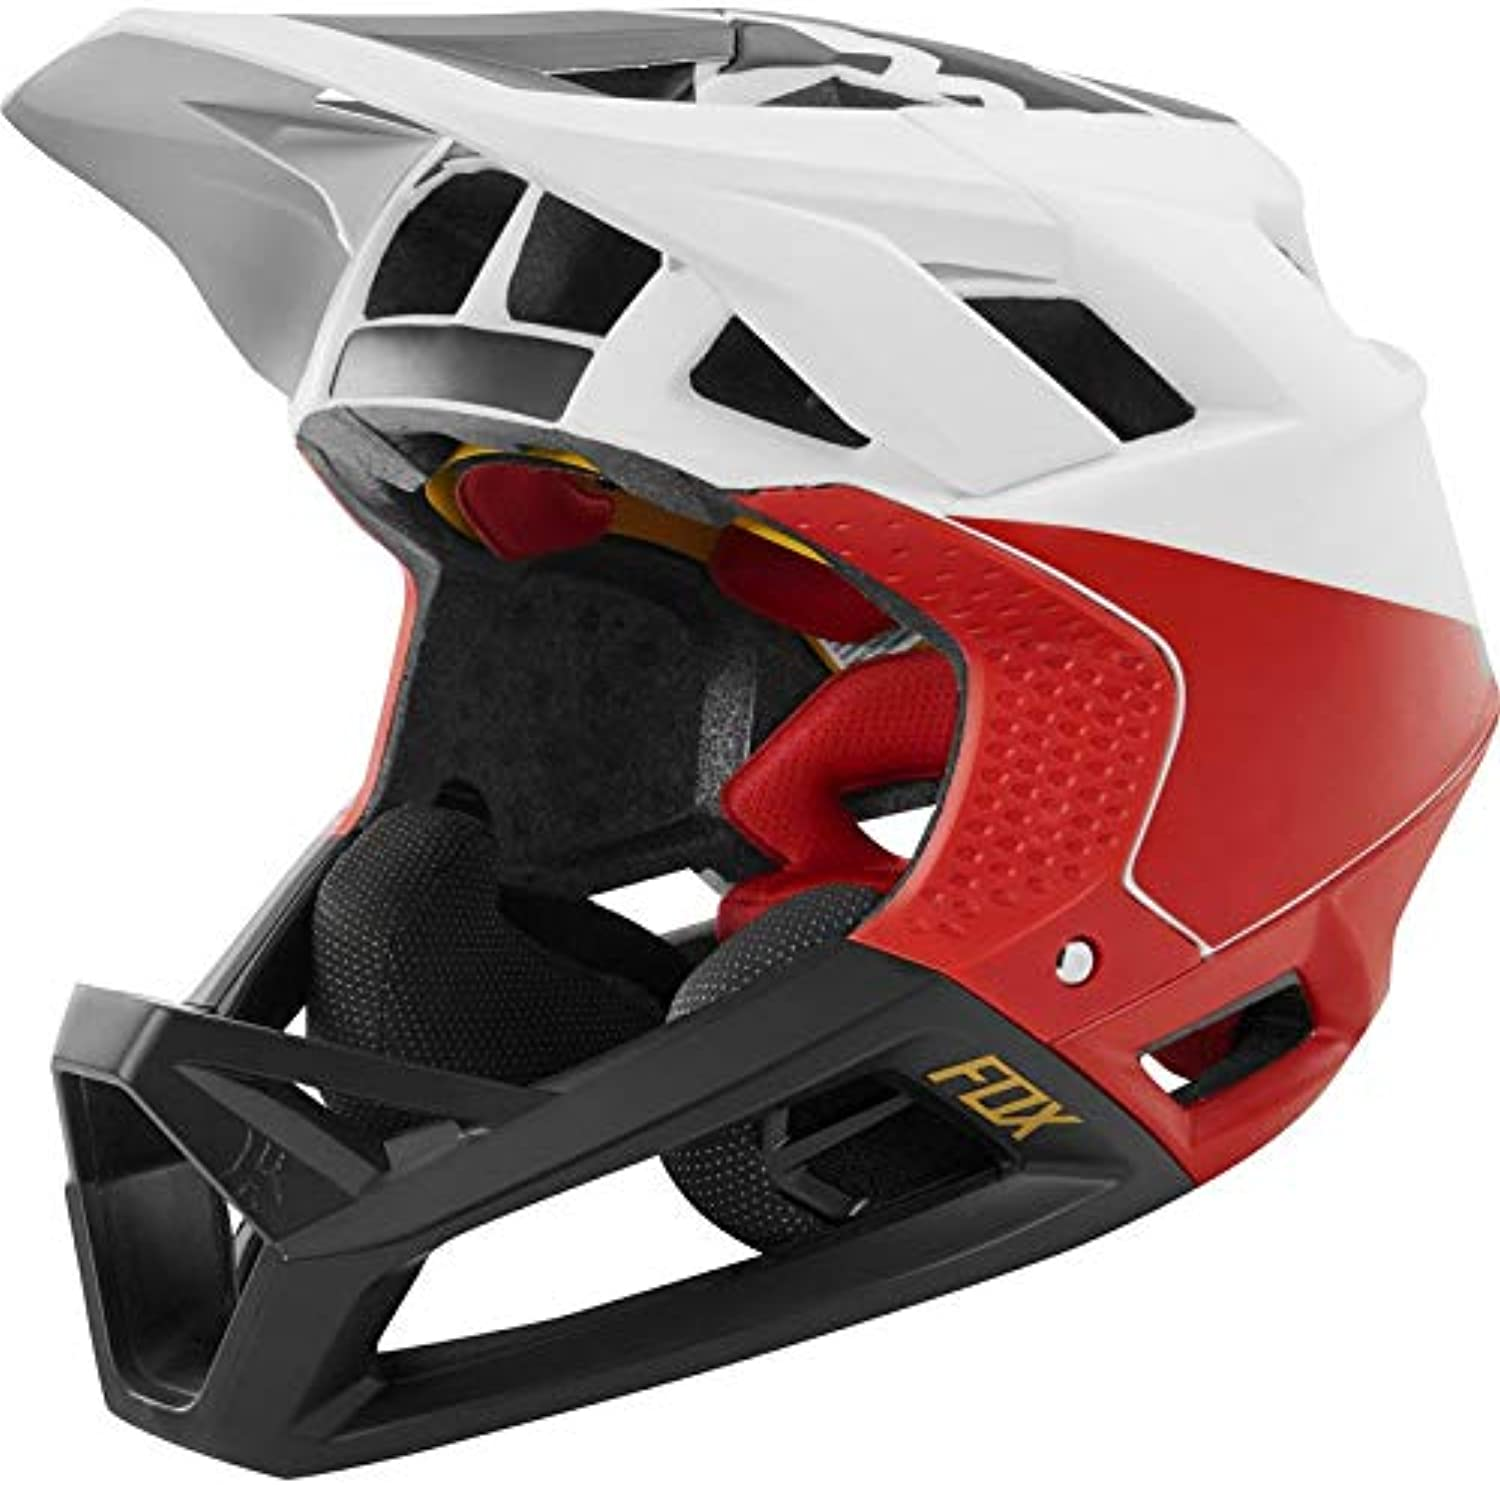 Fox Proframe Pistol Bike Helmet White Black Red